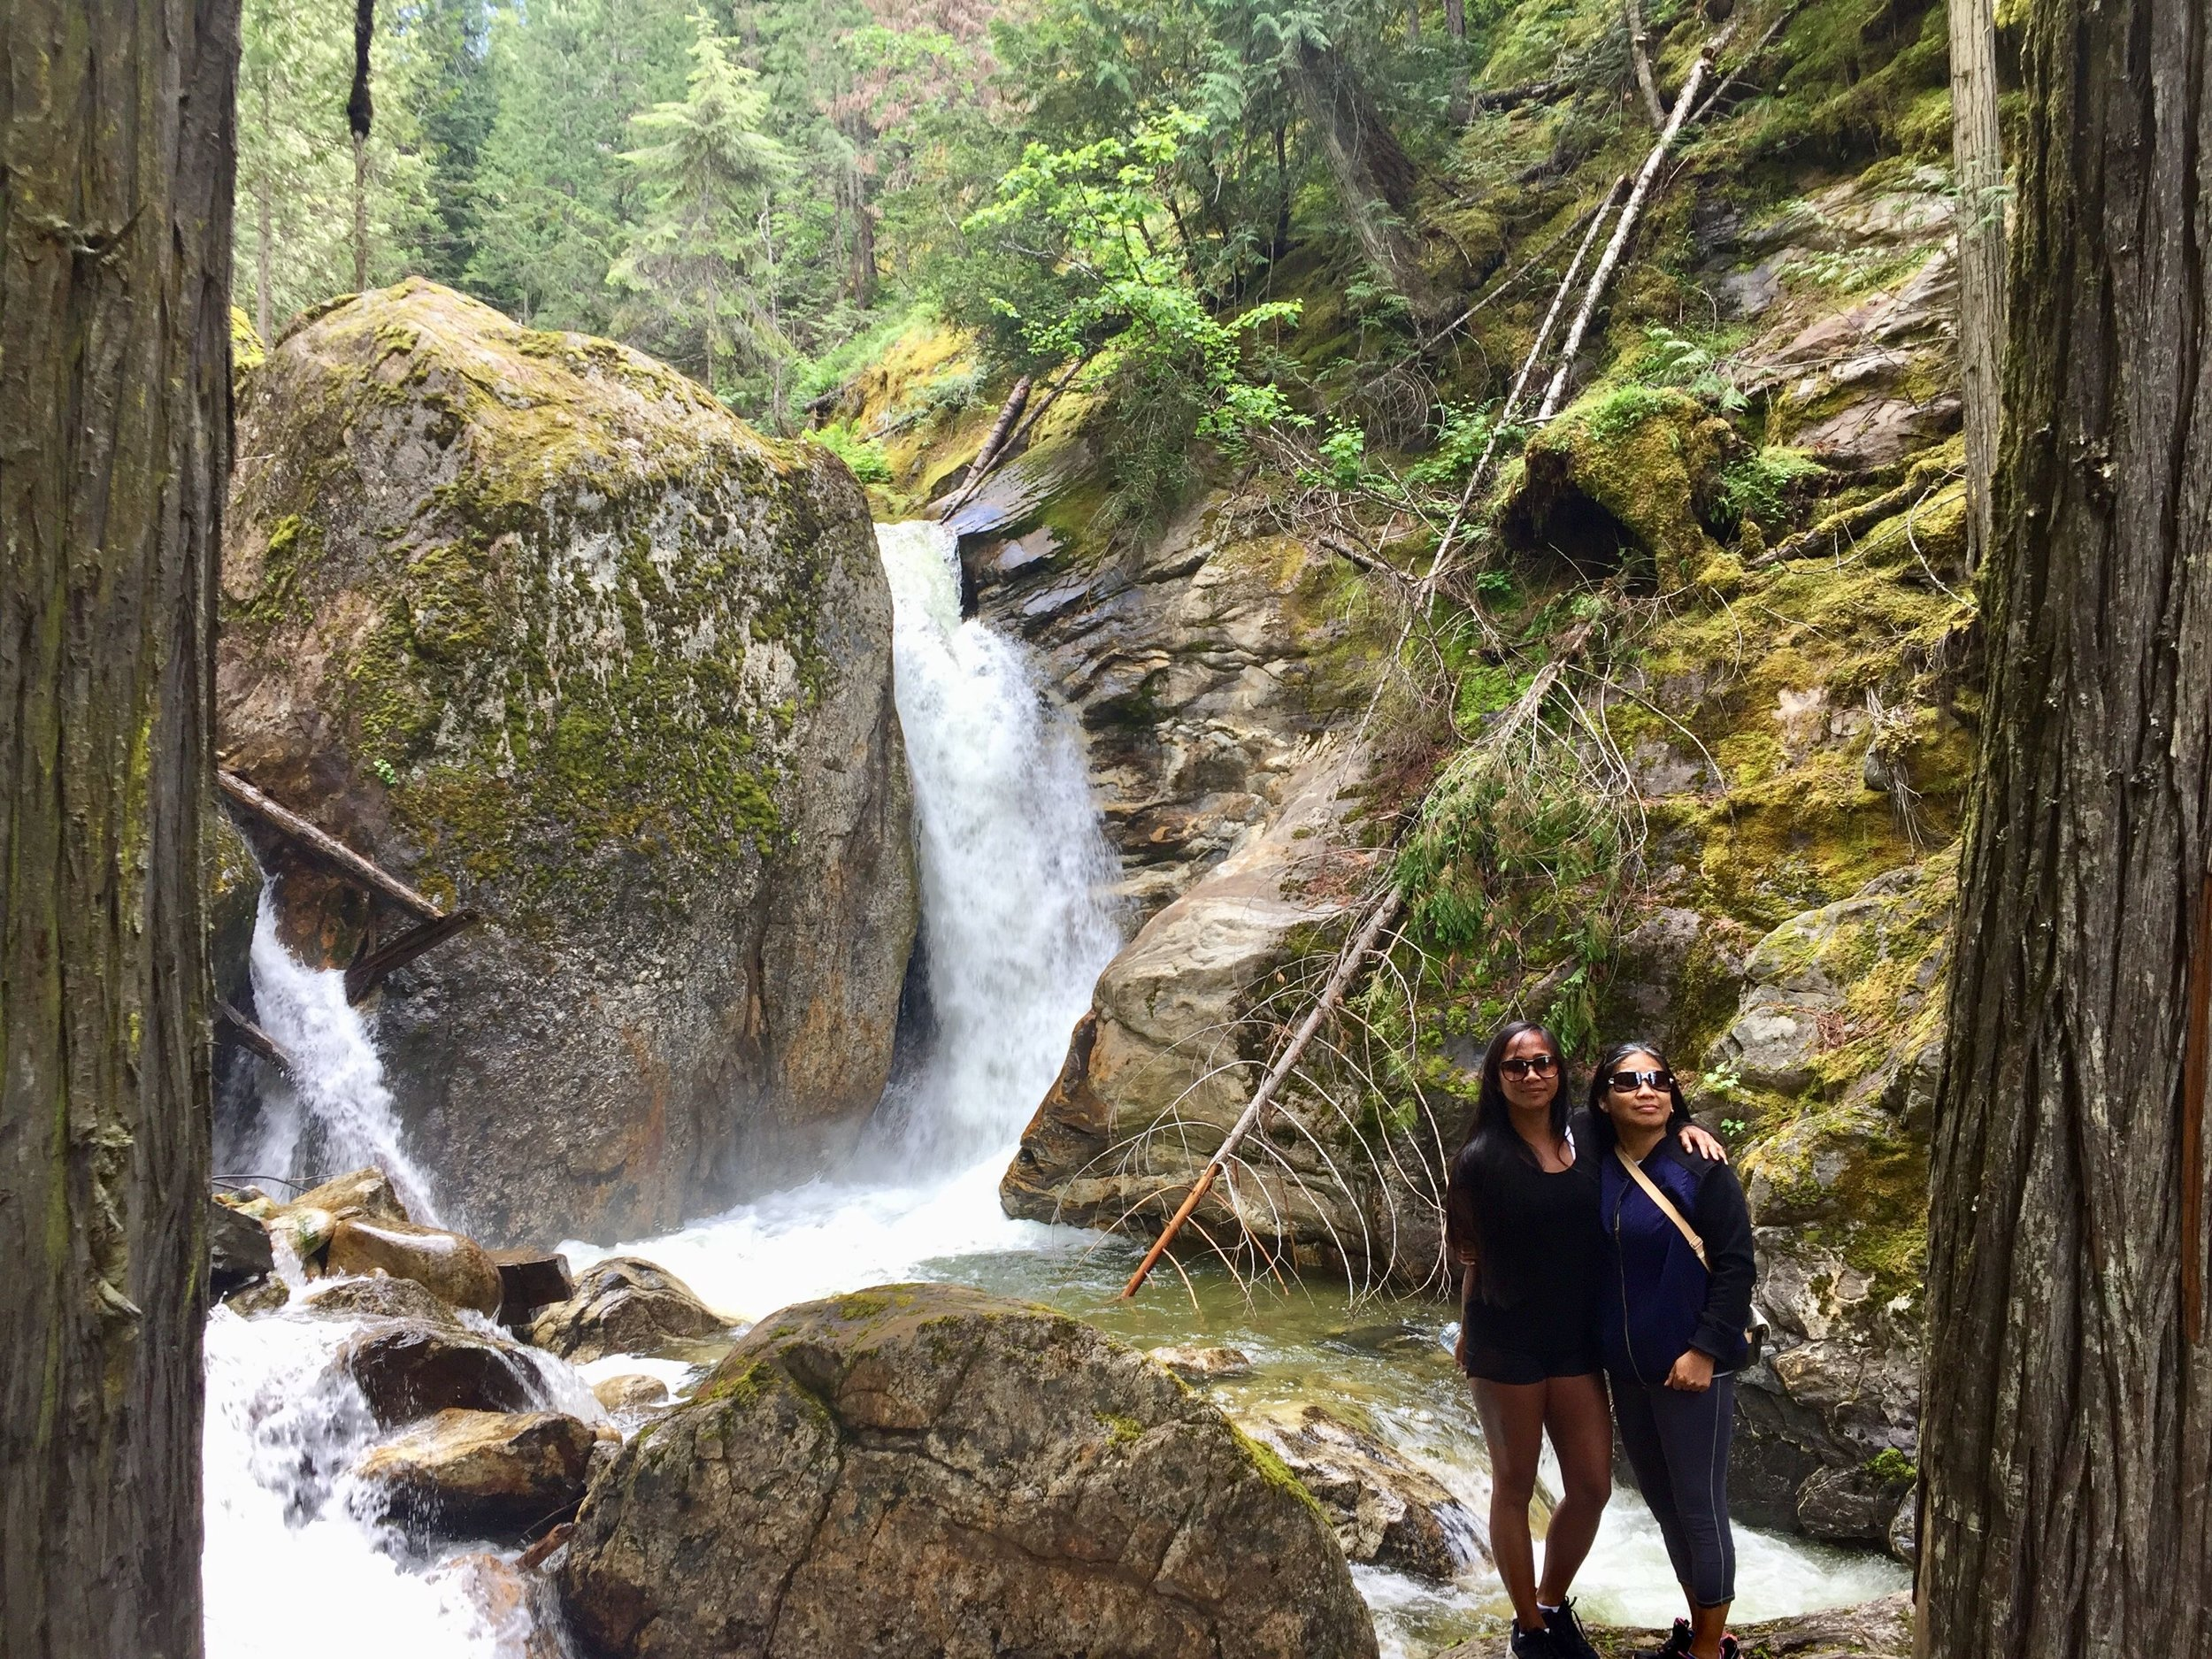 Sicamous Creek Falls, British Columbia, Canada